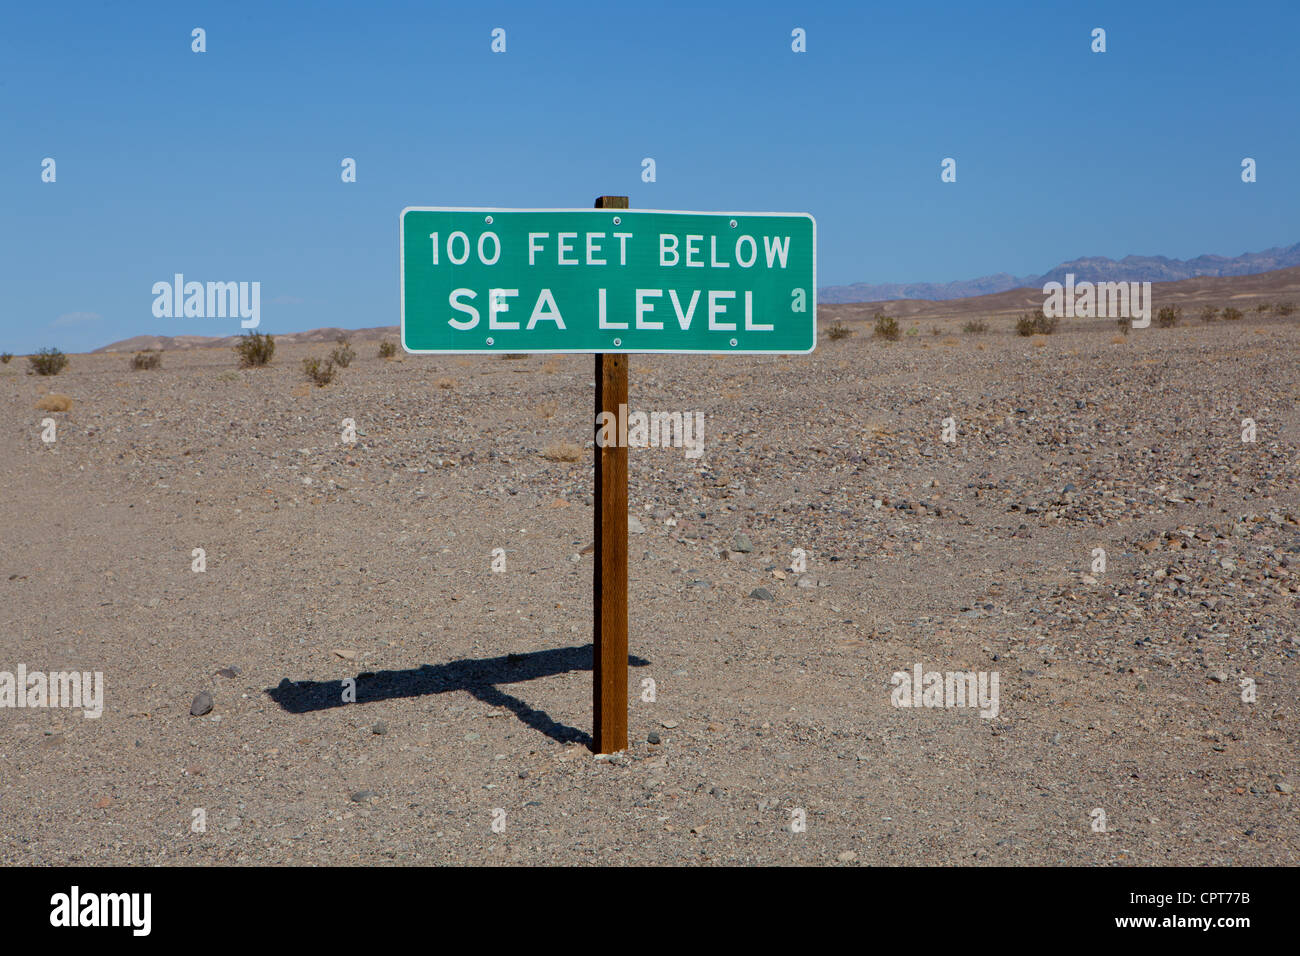 Altitude sign in Death Valley. - Stock Image